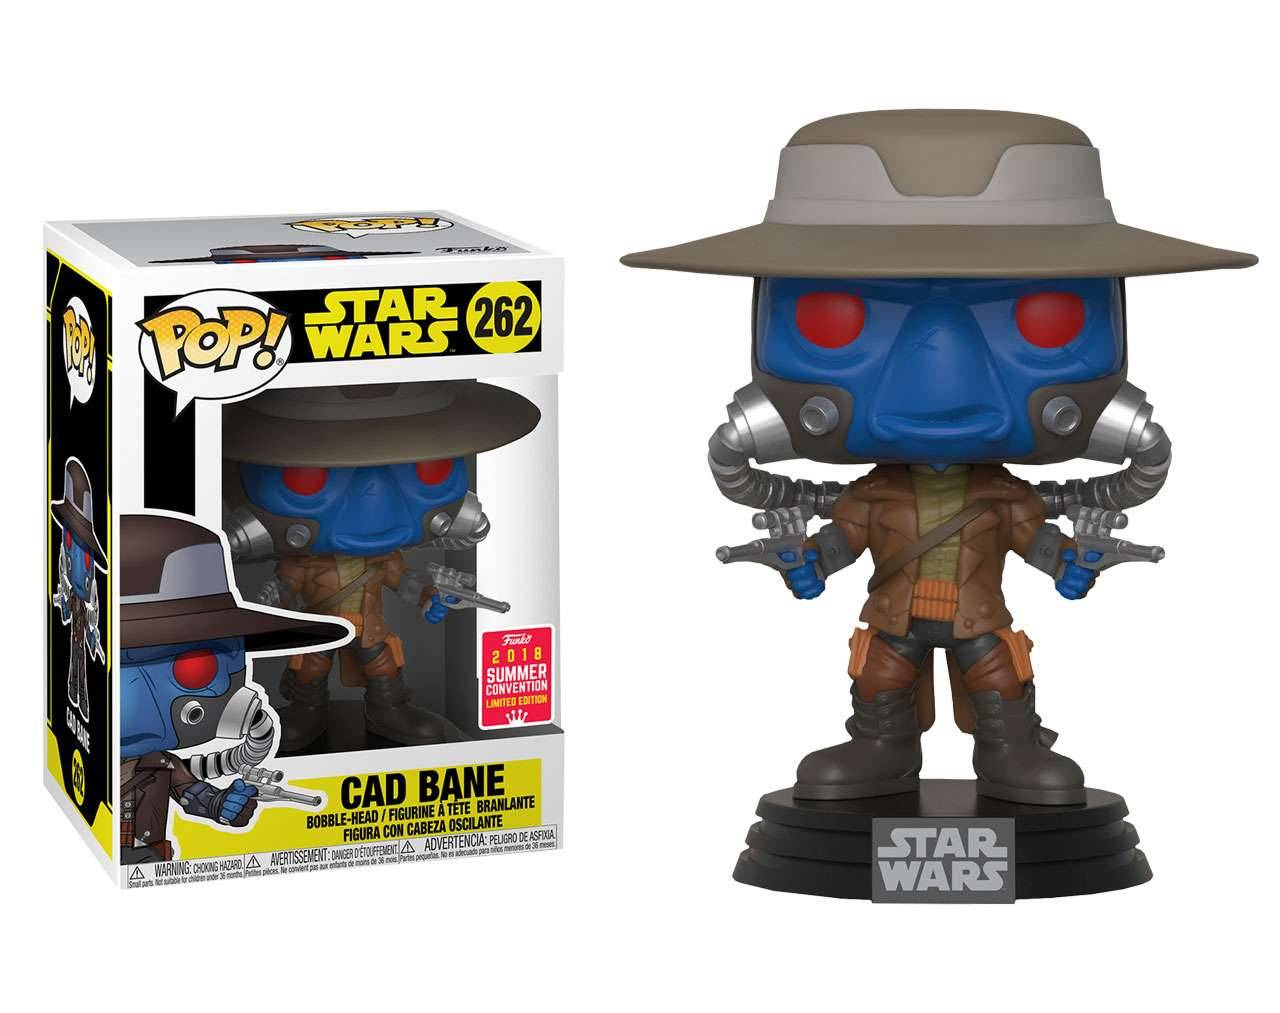 Cad Bane (SDCC 2018) Pop! Vinyl